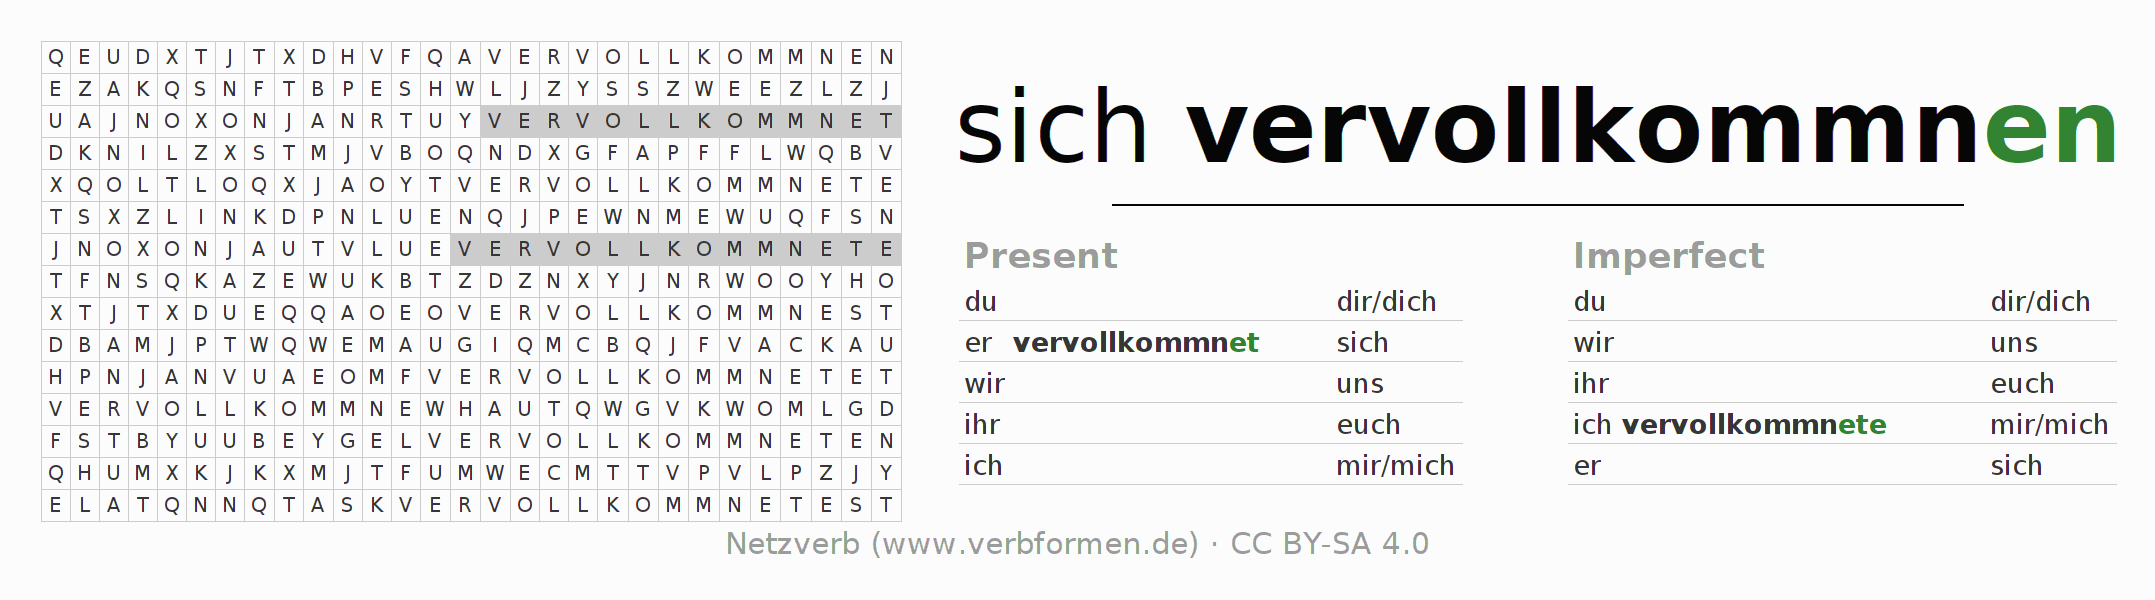 Word search puzzle for the conjugation of the verb sich vervollkommnen